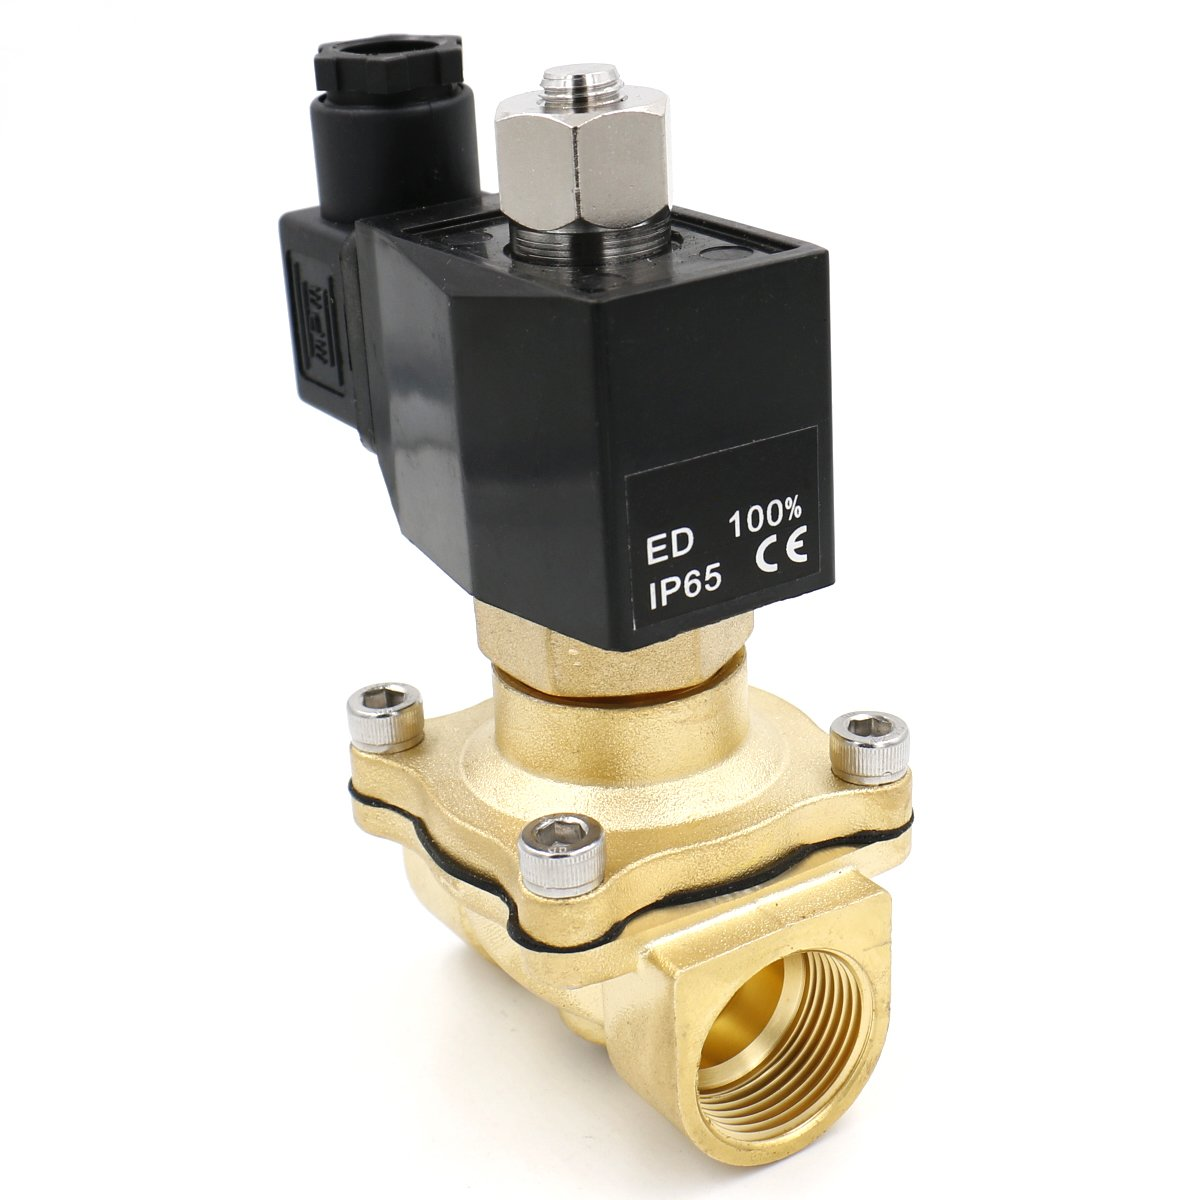 Heschen brass electric solenoid valve 2WK200-20 PT 3//4 AC 220V direct action water air gas normally open